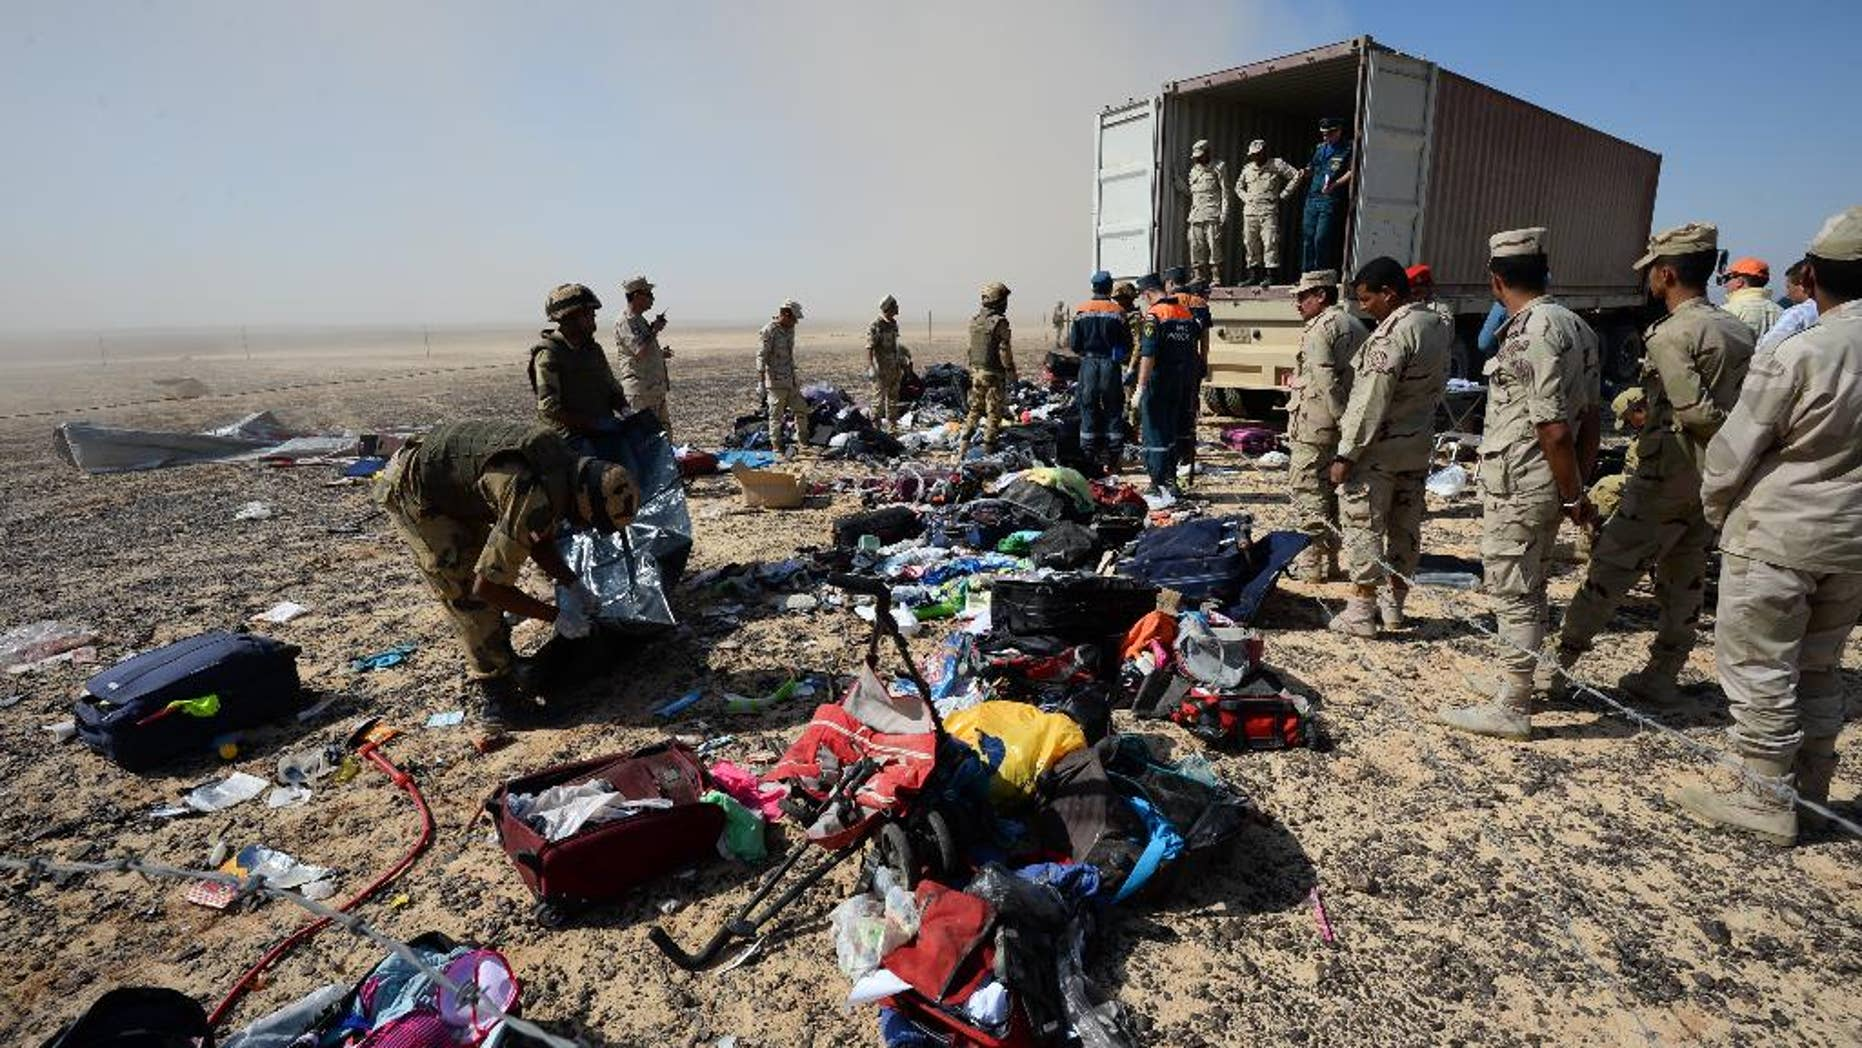 FILE - In this Monday, Nov. 2, 2015 file photo provided by the Russian Ministry for Emergency Situations, Egyptian soldiers collect personal belongings of plane crash victims at the crash site of a passenger plane bound for St. Petersburg in Russia that crashed in Hassana, Egypt's Sinai Peninsula. If an Islamic State bomb caused the Russian plane crash in Egypt, as U.S. and British officials suggest, it would mark the extremist group's largest act of transnational terrorism by far, and could  herald a new phase in its conflict with much of the world. (Russian Ministry for Emergency Situations via AP, File)